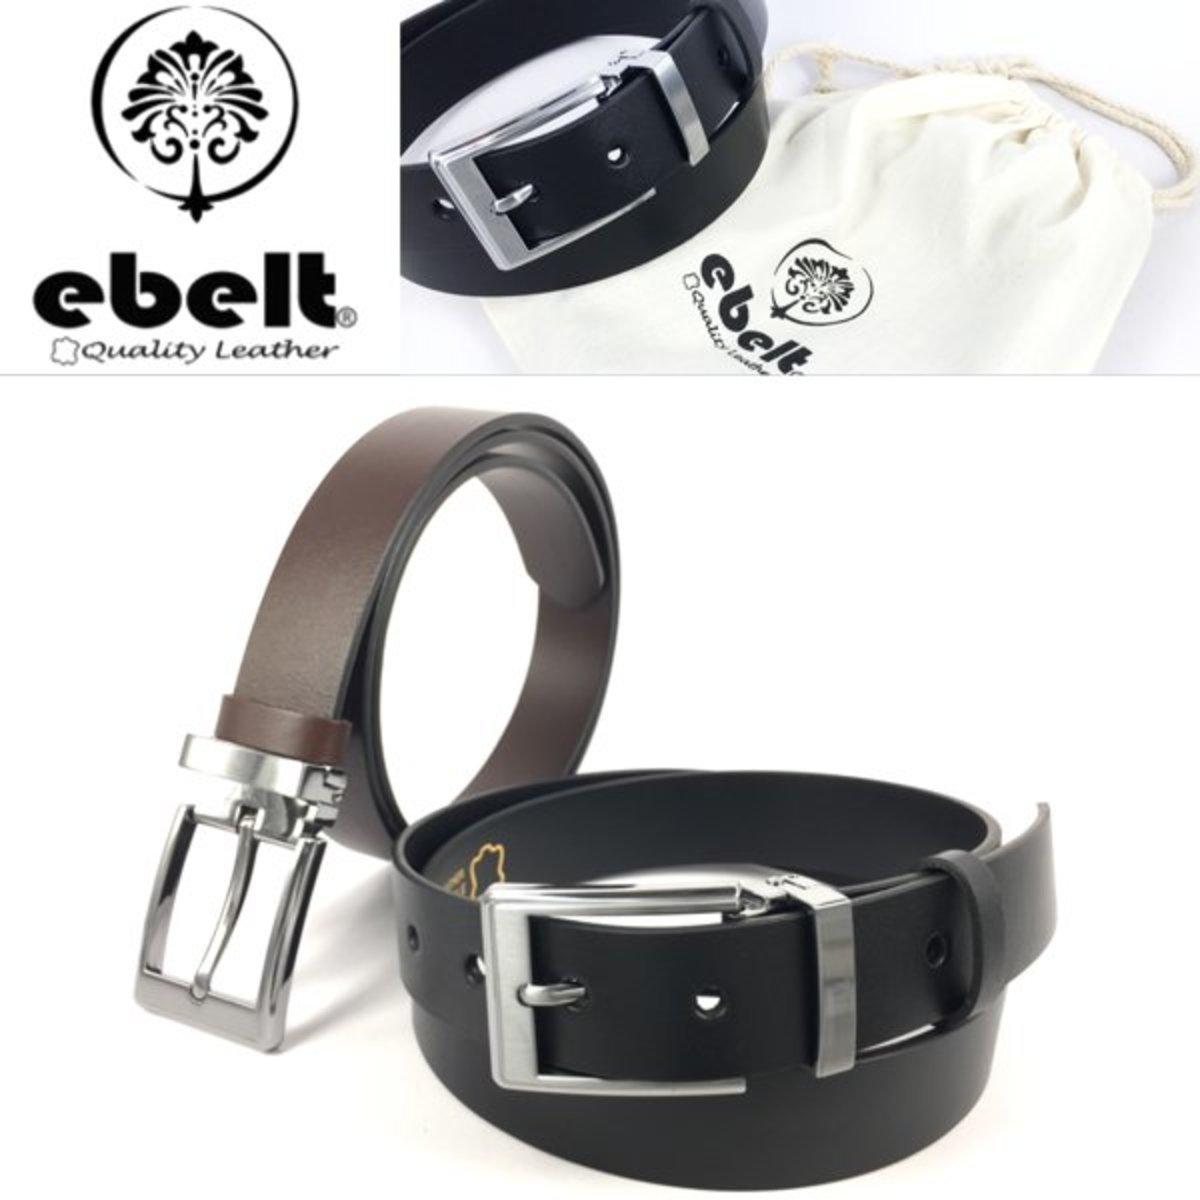 ebelt 頭層意大利頭層牛皮皮帶 Full Grain Italian Cow Leather Belt 2.9cm - ebc0326